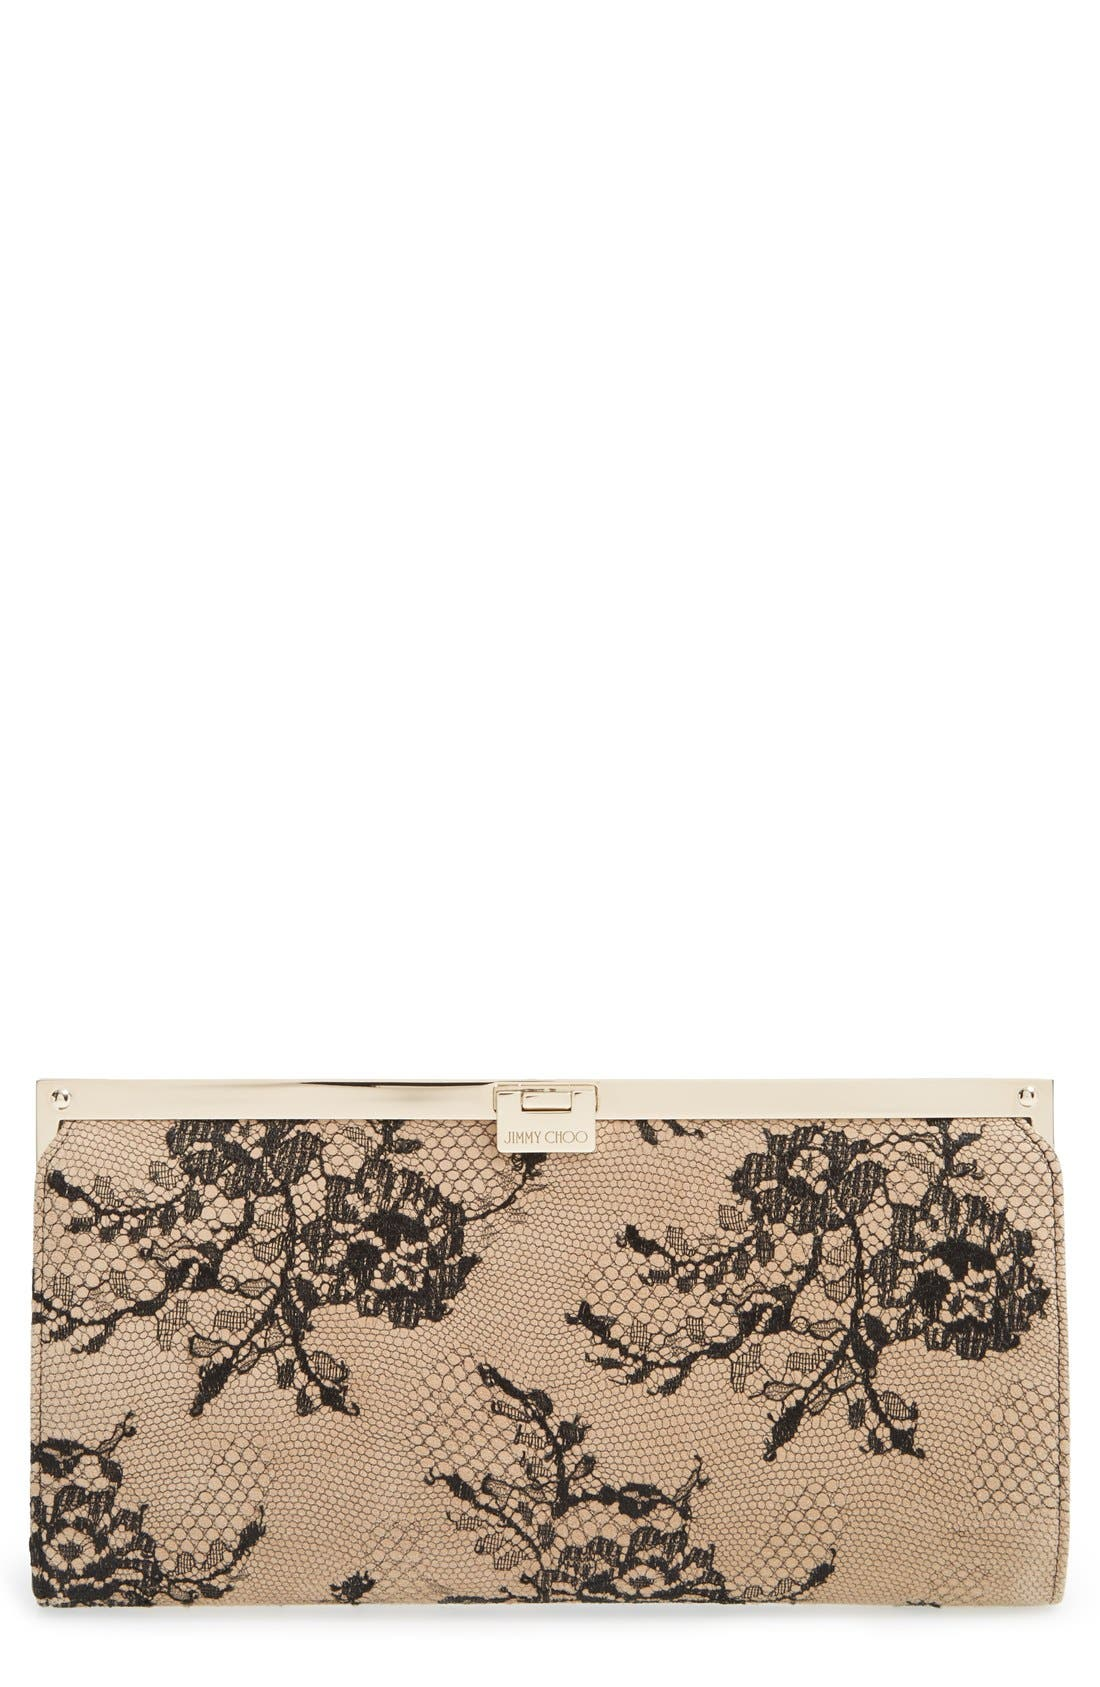 Camille Lace & Leather Clutch,                         Main,                         color, Black